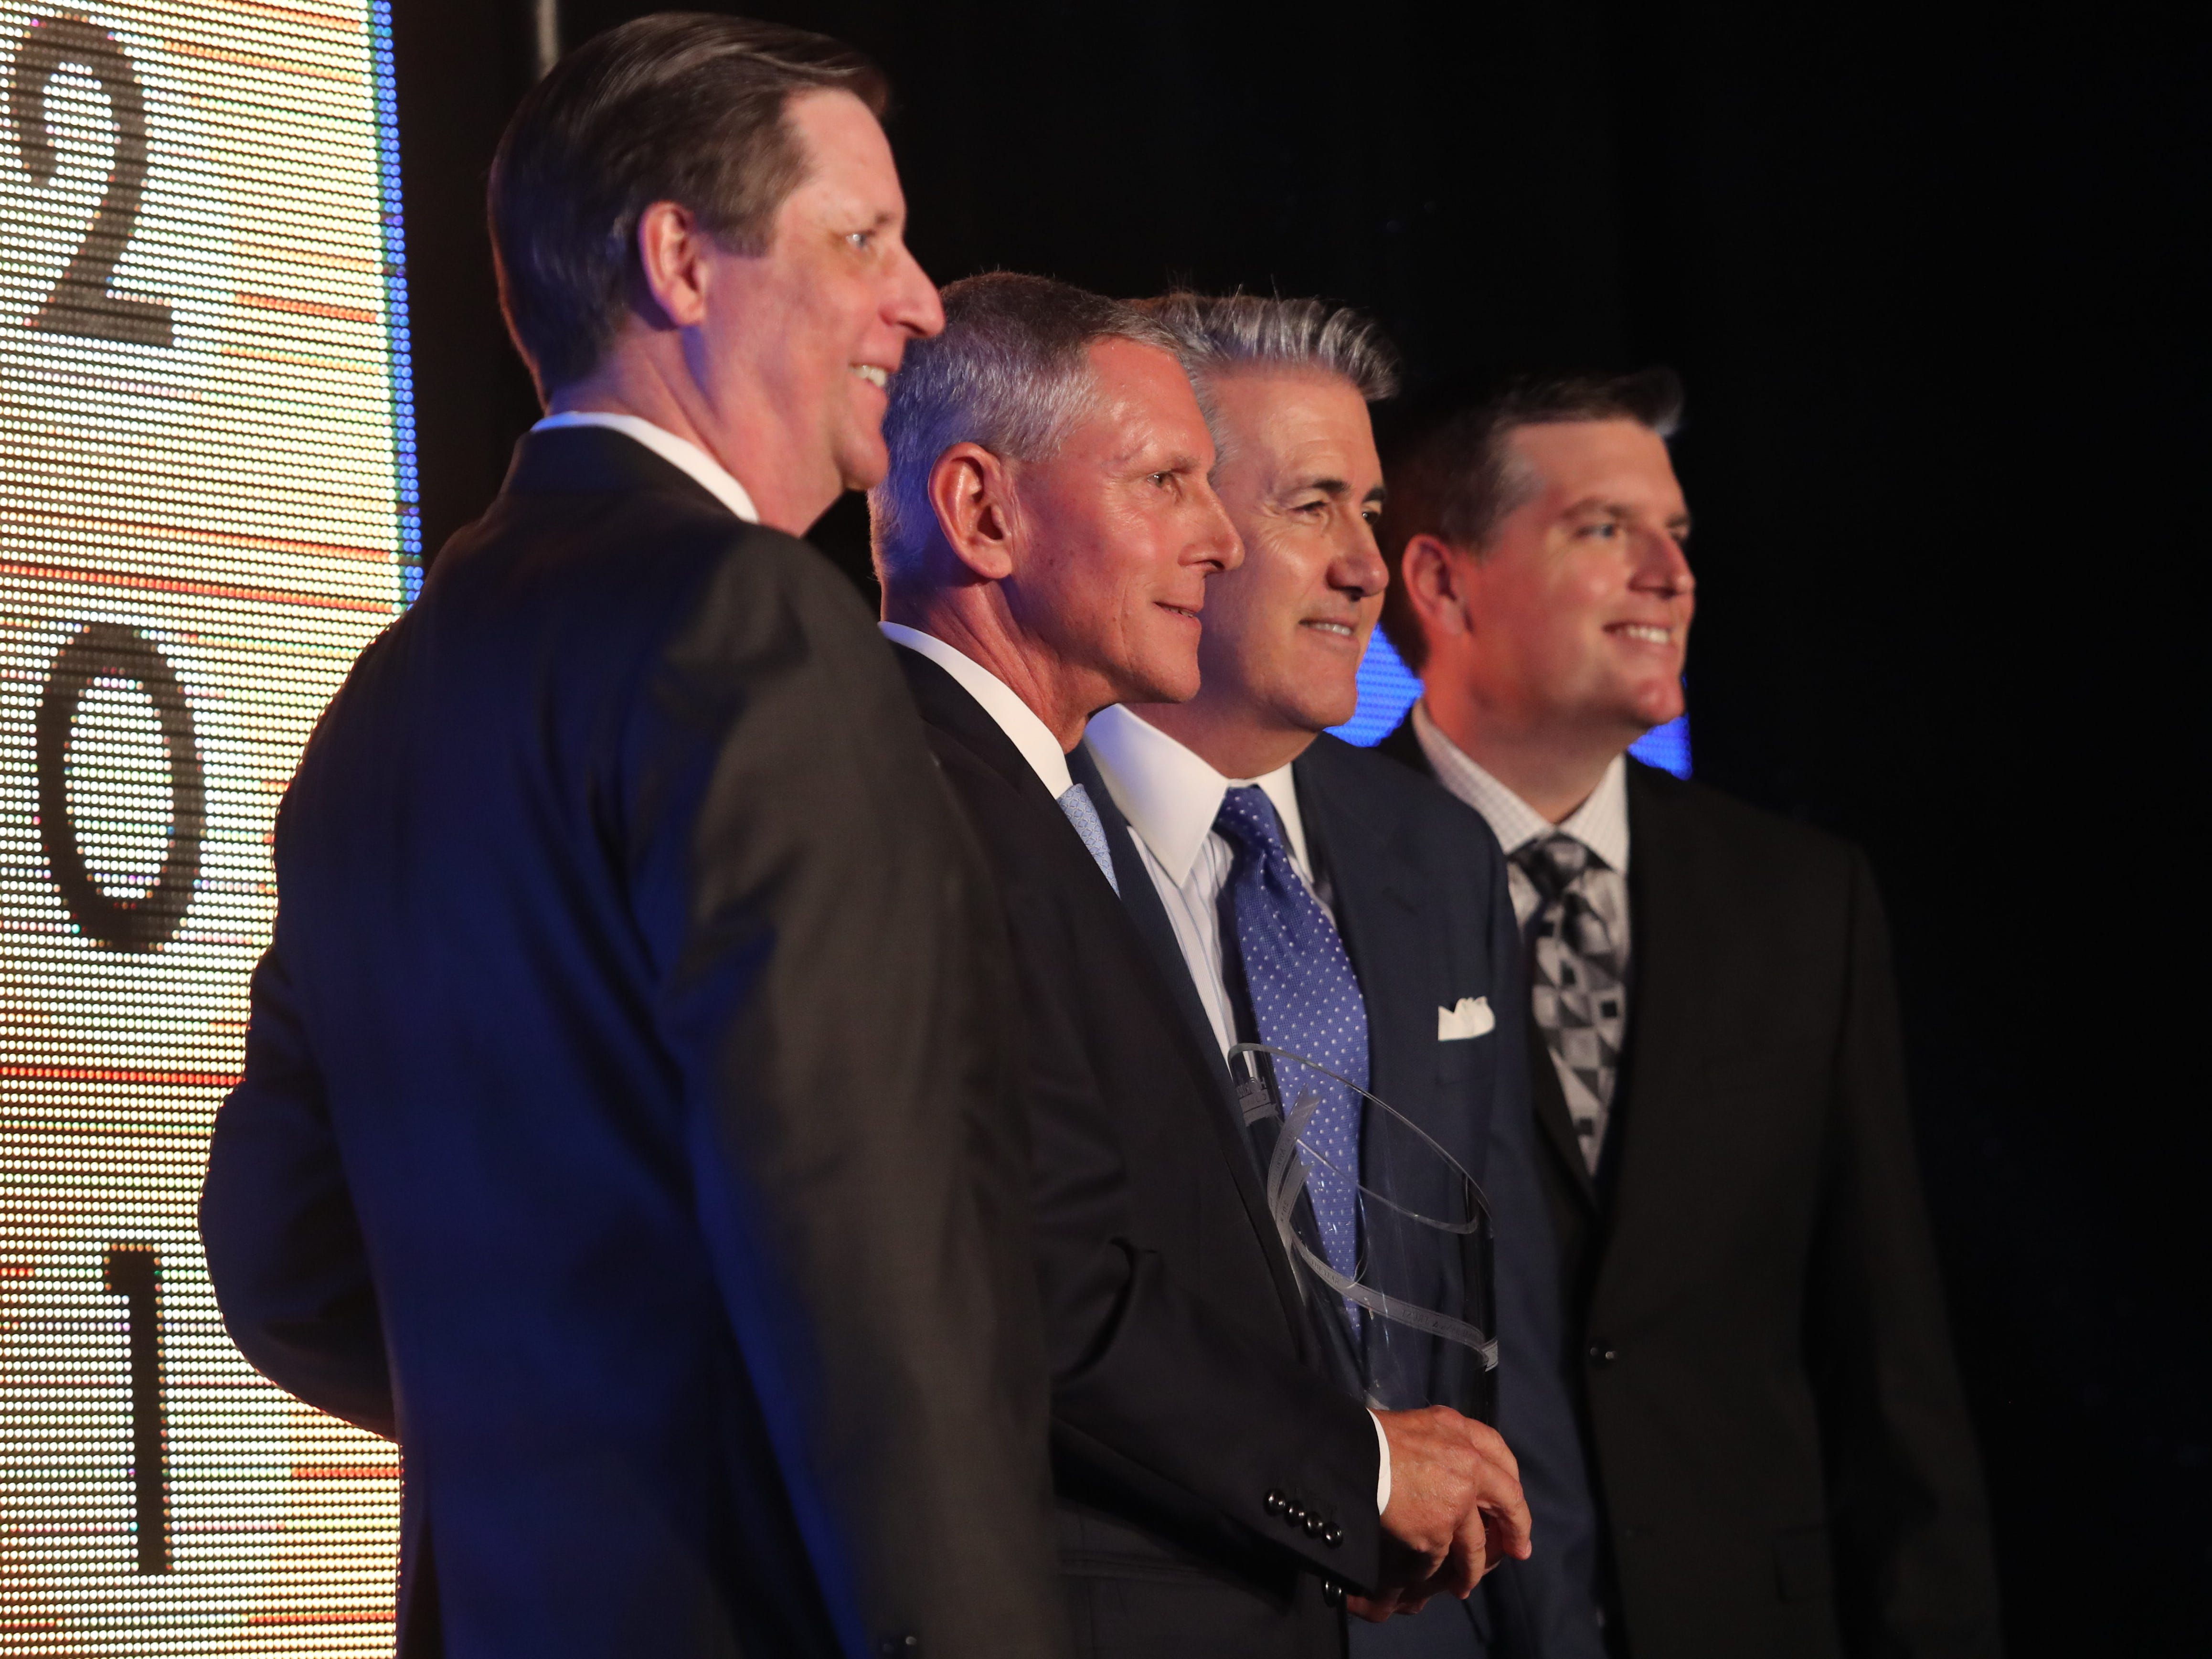 Gray Davis, left, and Lee County commissioner Brian Hamman, right,  present Joseph Catti and Harlan Parrish, of FineMark National Bank, the award for Business of the Year at the 2018 Industry Appreciation Awards on Thursday at the Hyatt Regency Coconut Point Resort and Spa in Bonita Springs.